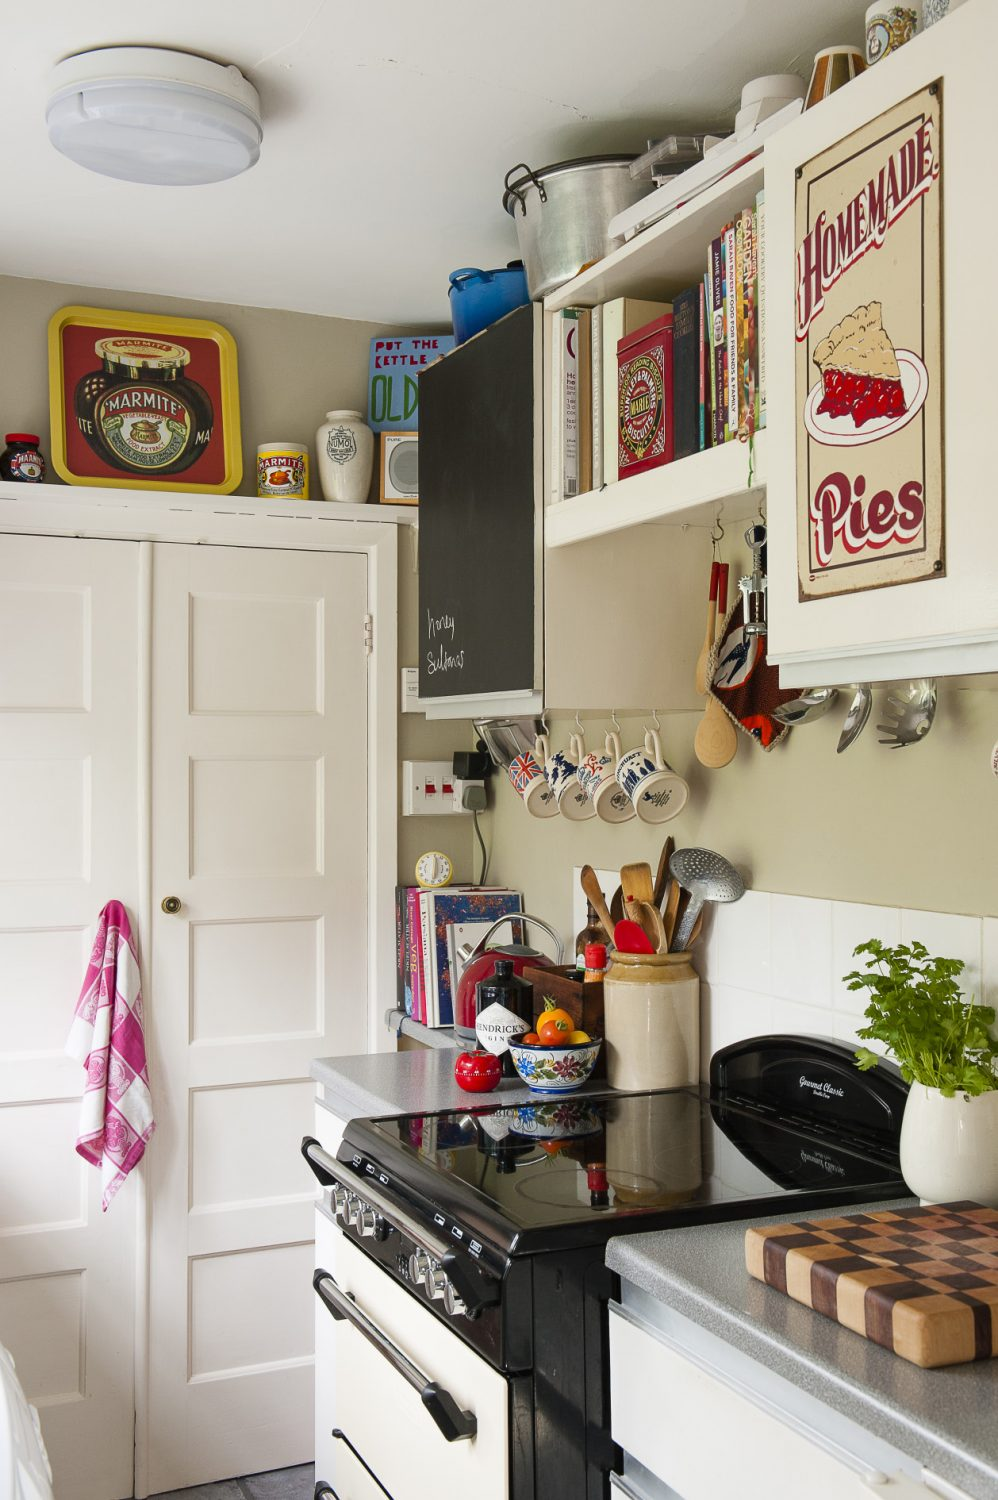 A galley kitchen continues in the retro theme